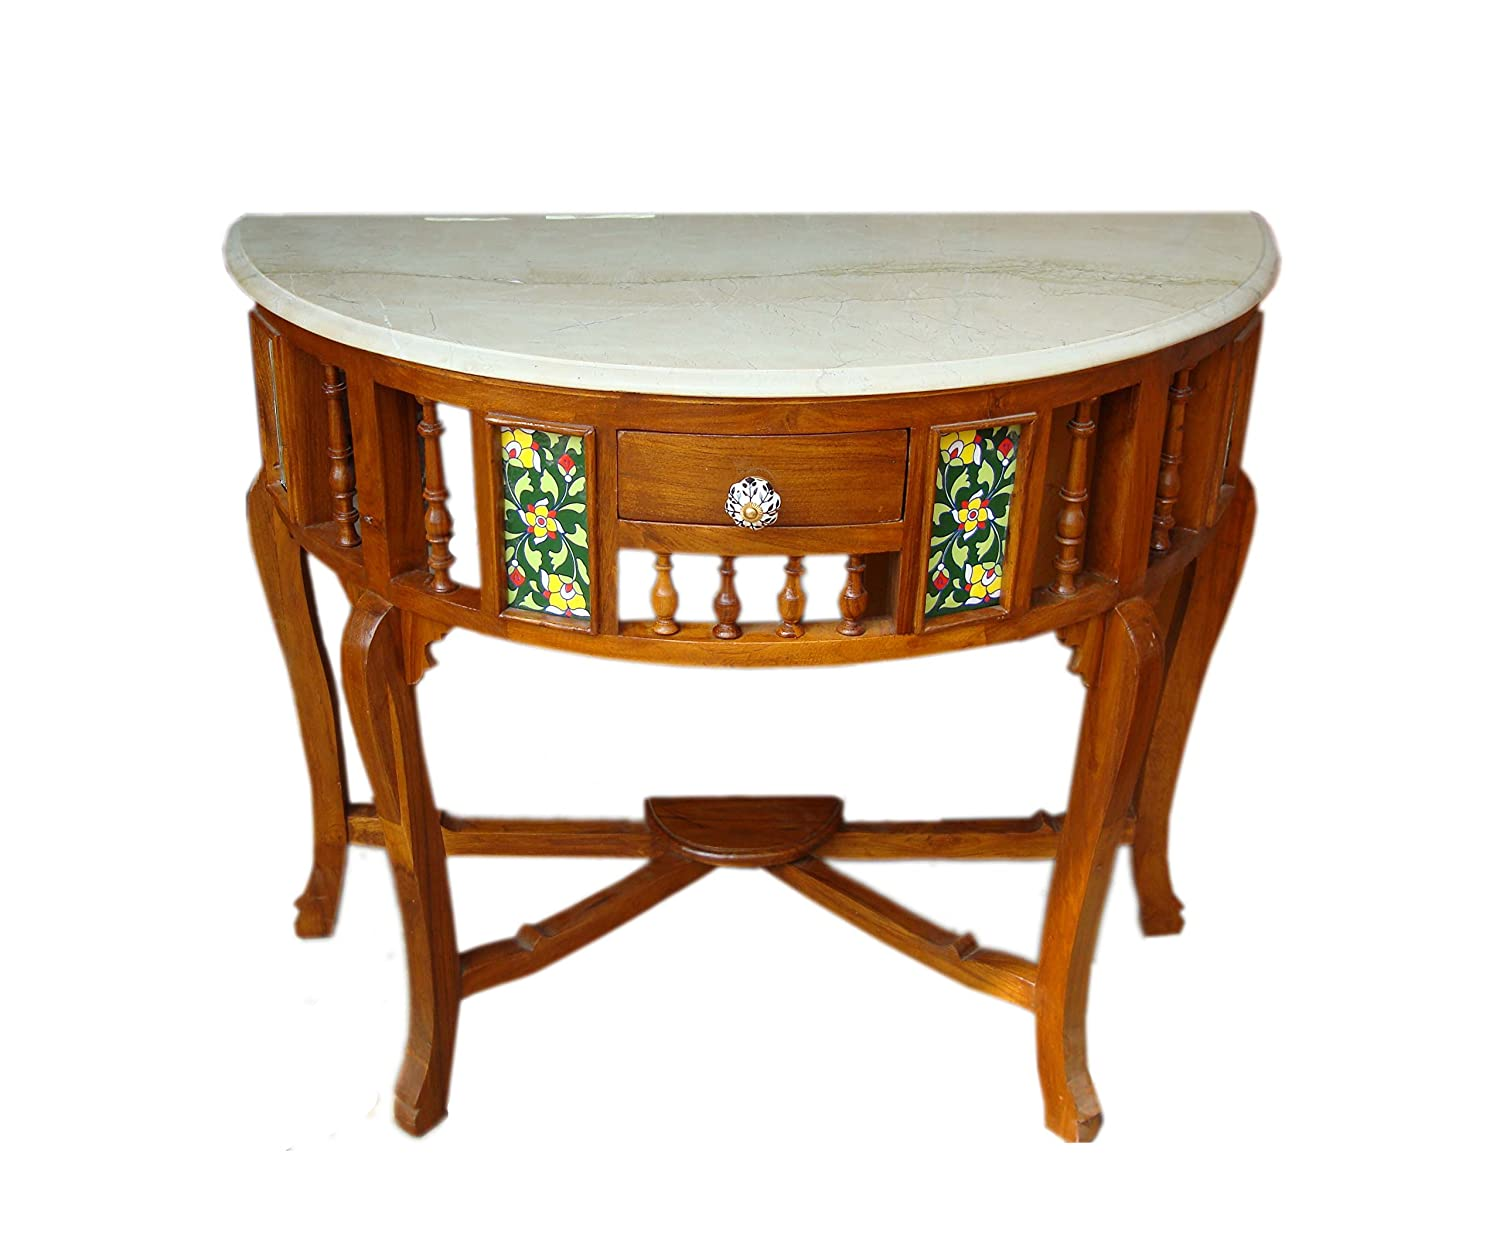 Solid Teak Wood Half Round (D) Shaped Antique Traditional Look Console Table with Marble Top Size : 30x36x15 (HxWxD)